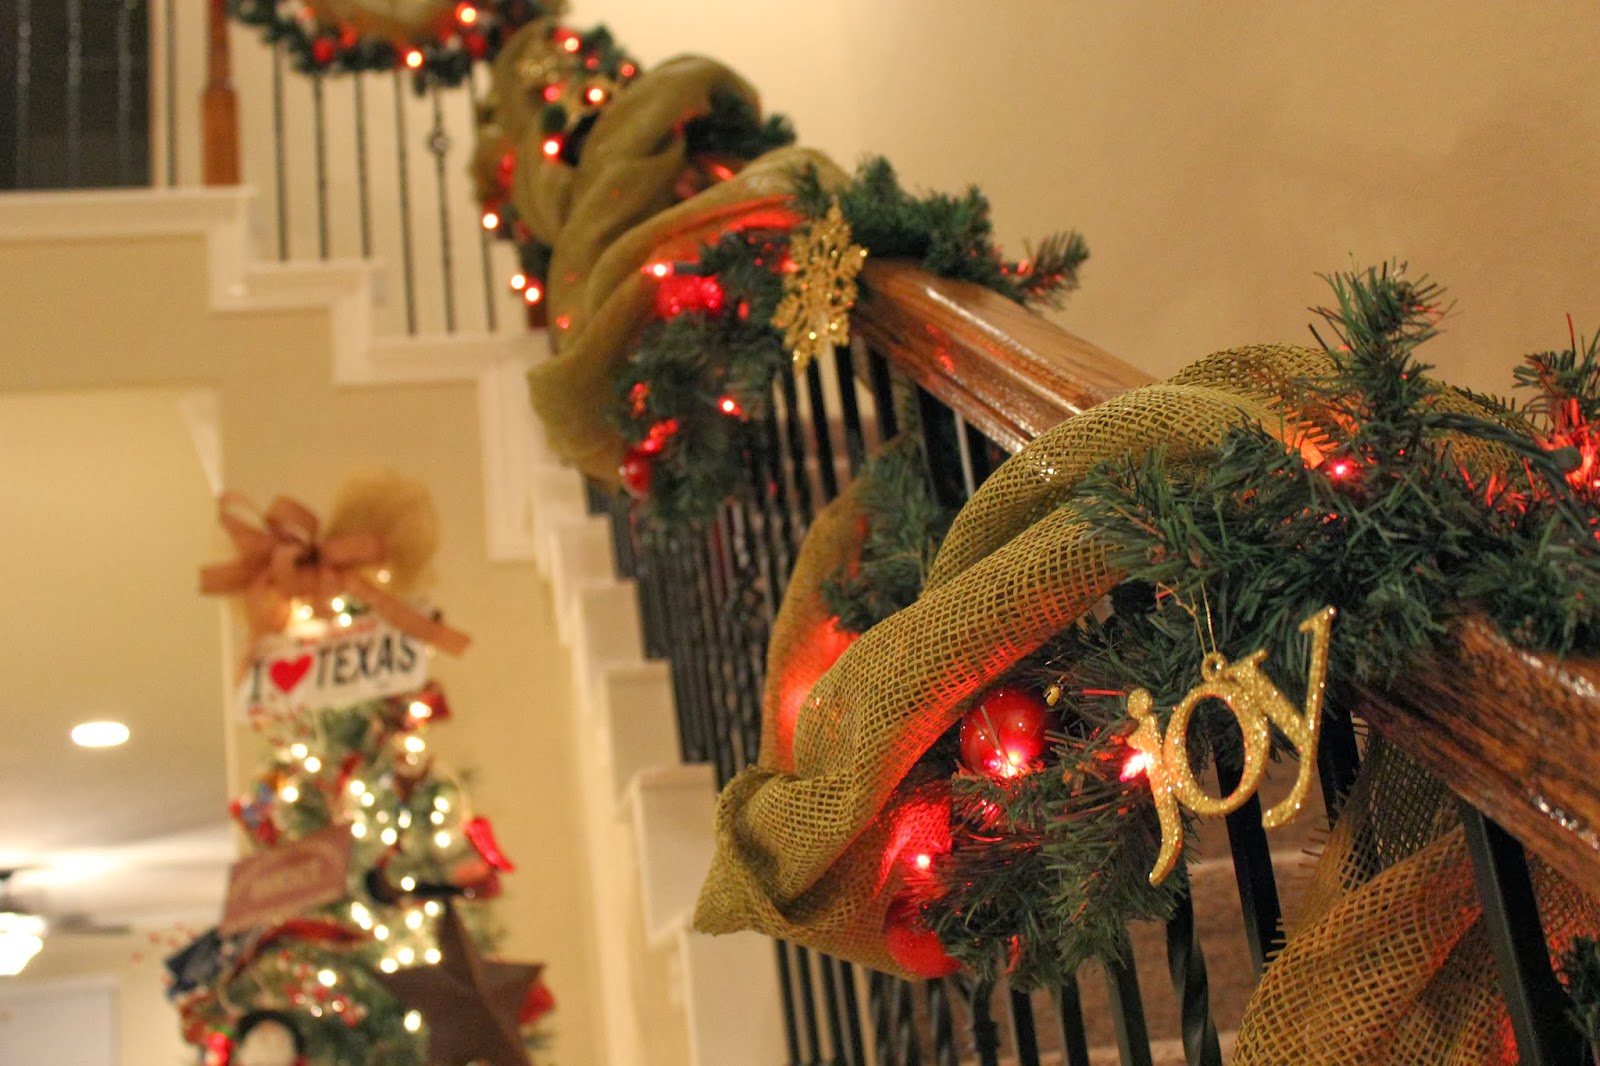 stair details ornaments from dollar tree garland from hobby lobby burlap fabric from paul michaels - Hobby Lobby Christmas Eve Hours